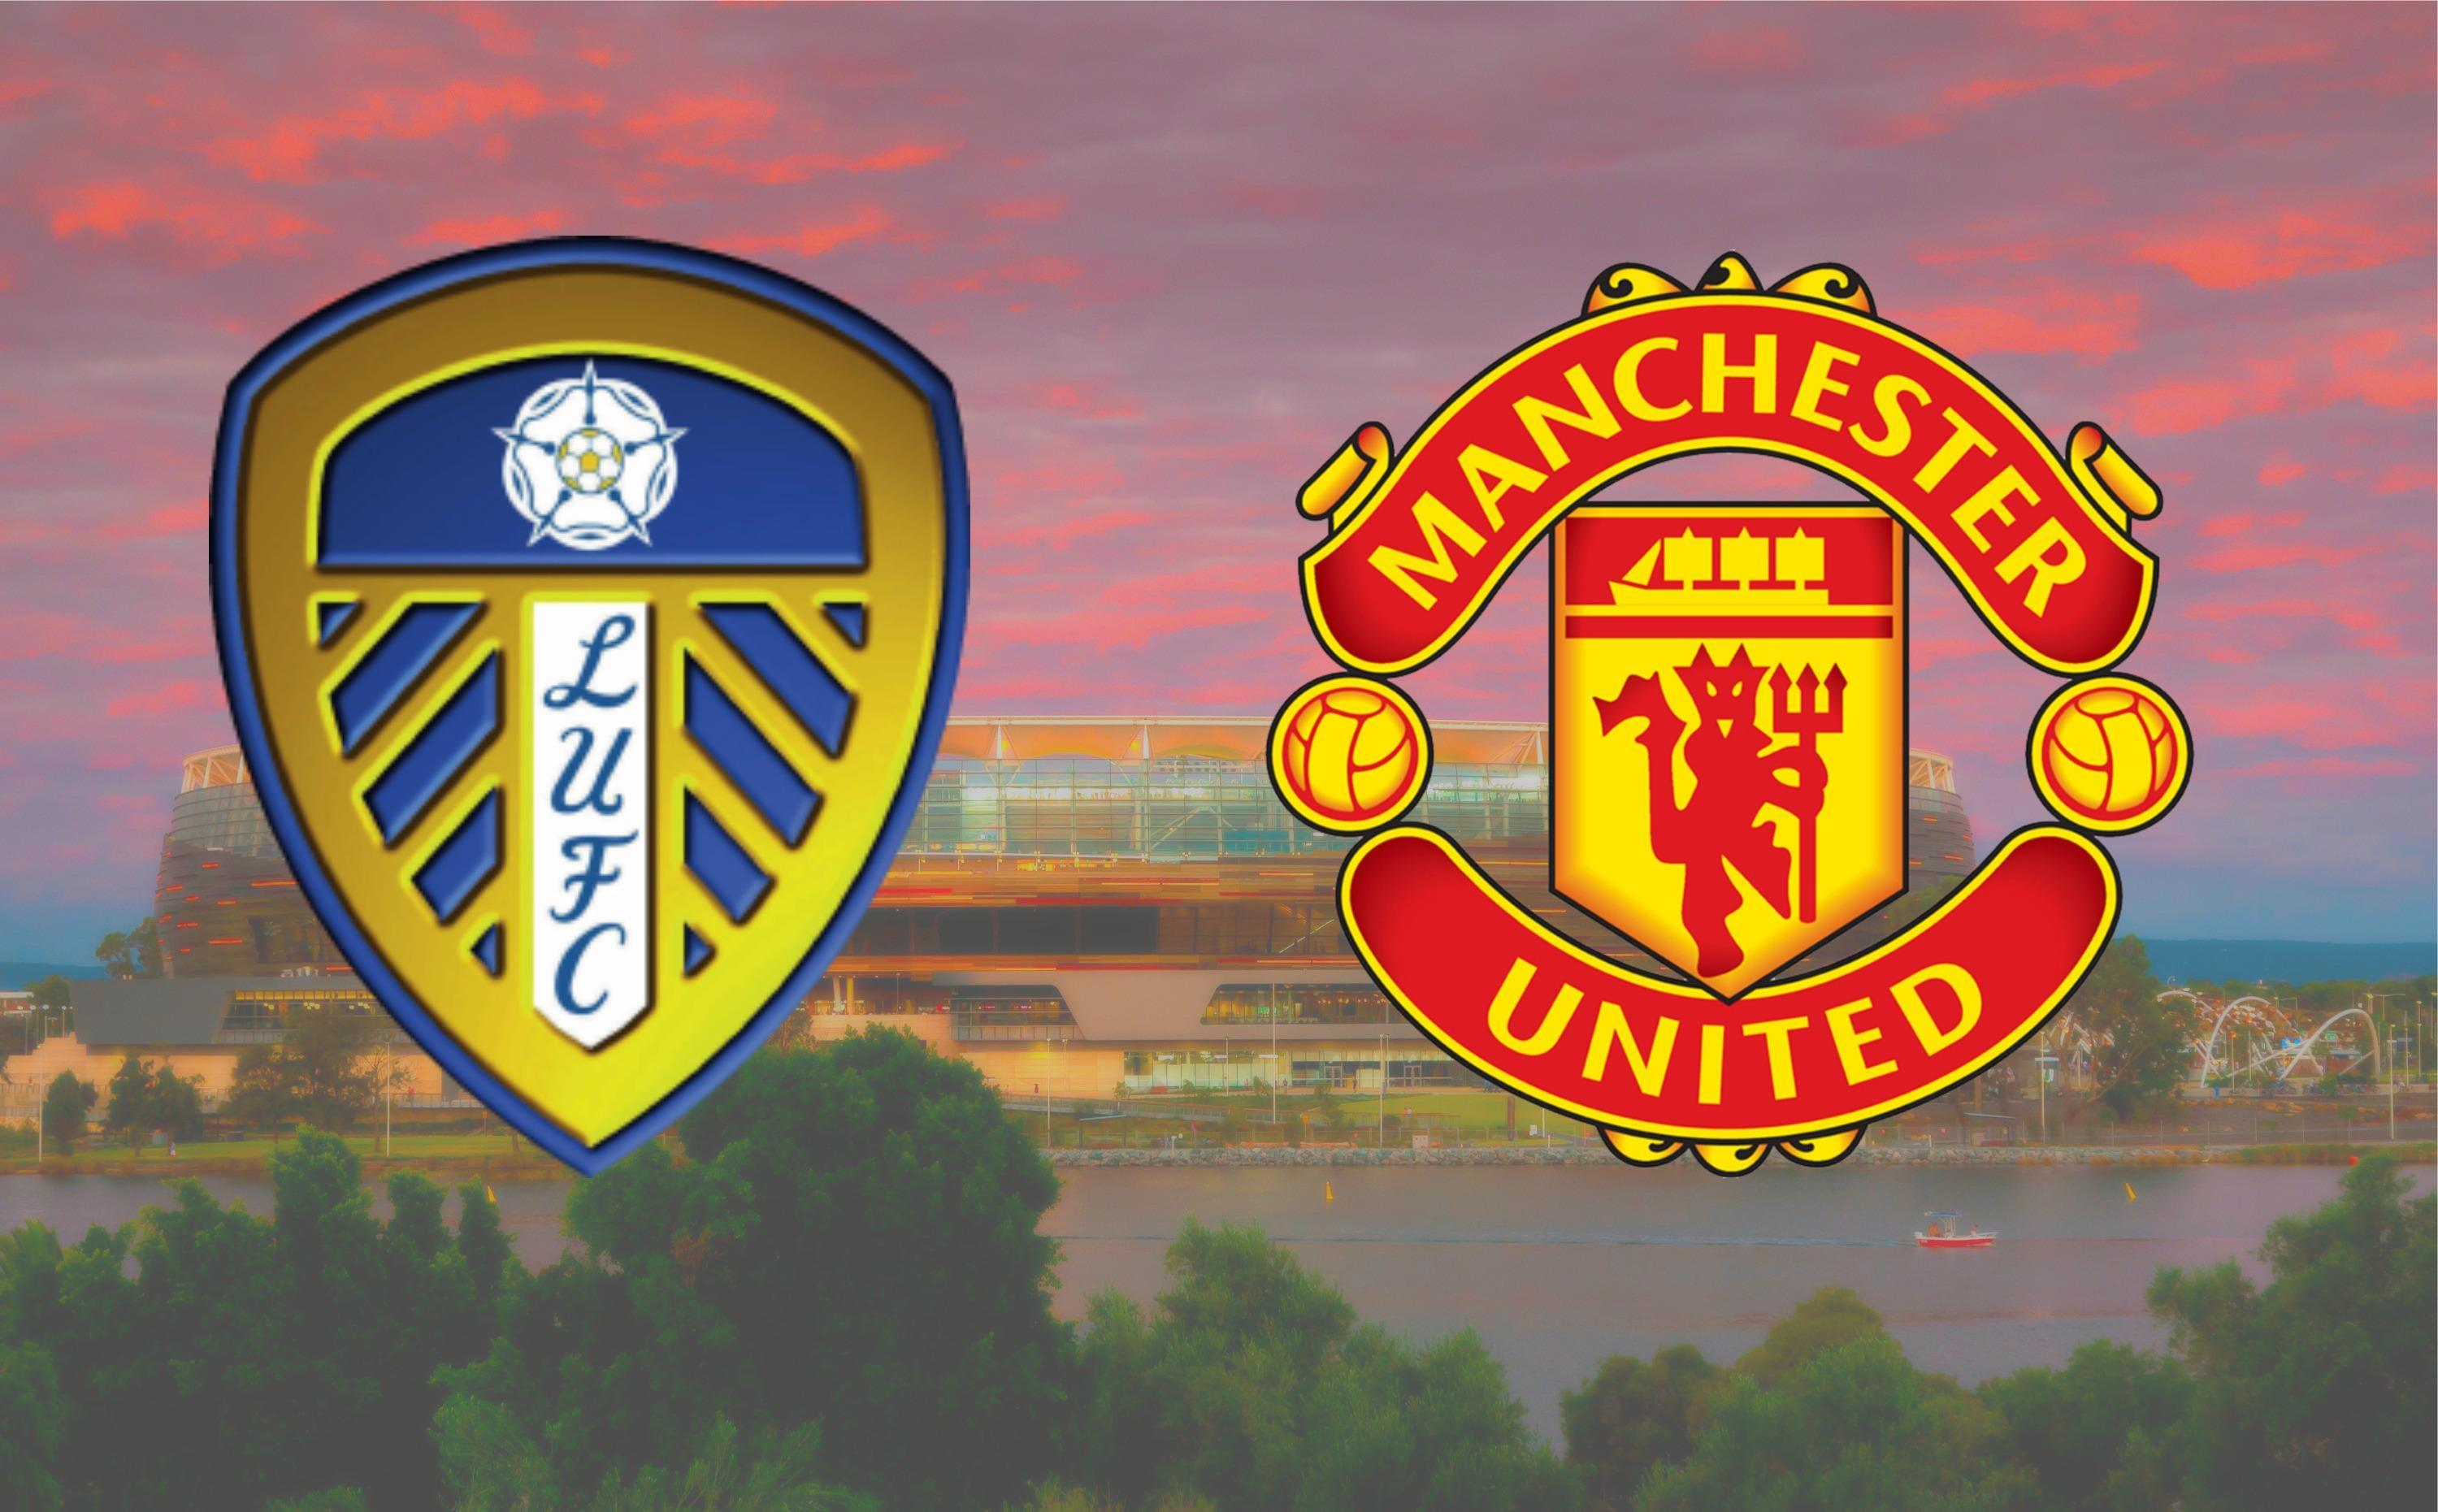 Manchester United & Leeds rivalry comes to Optus Stadium